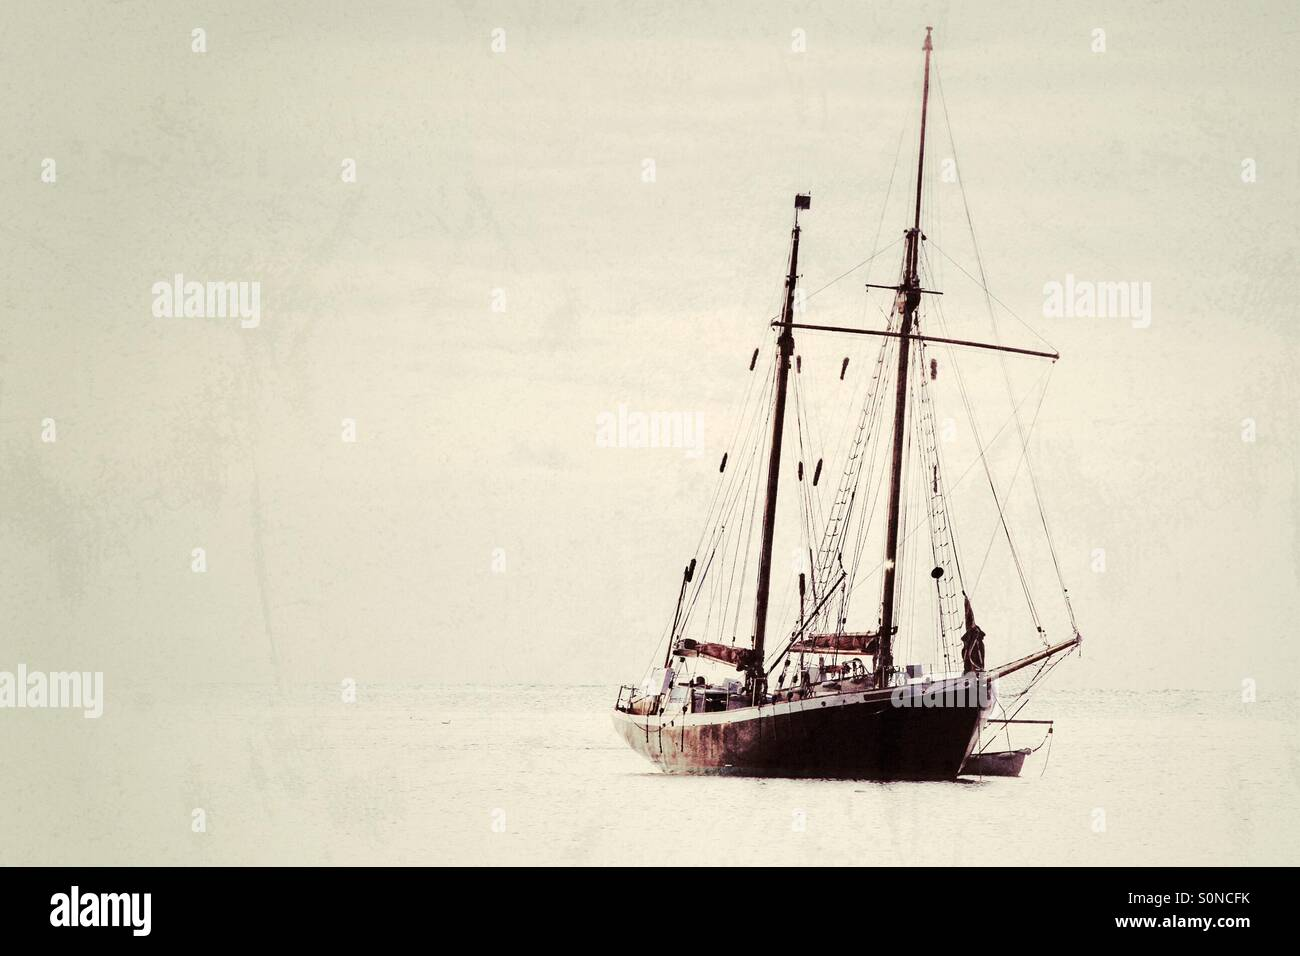 A single, twin masted yacht floating on a calm, flat Ocean. - Stock Image